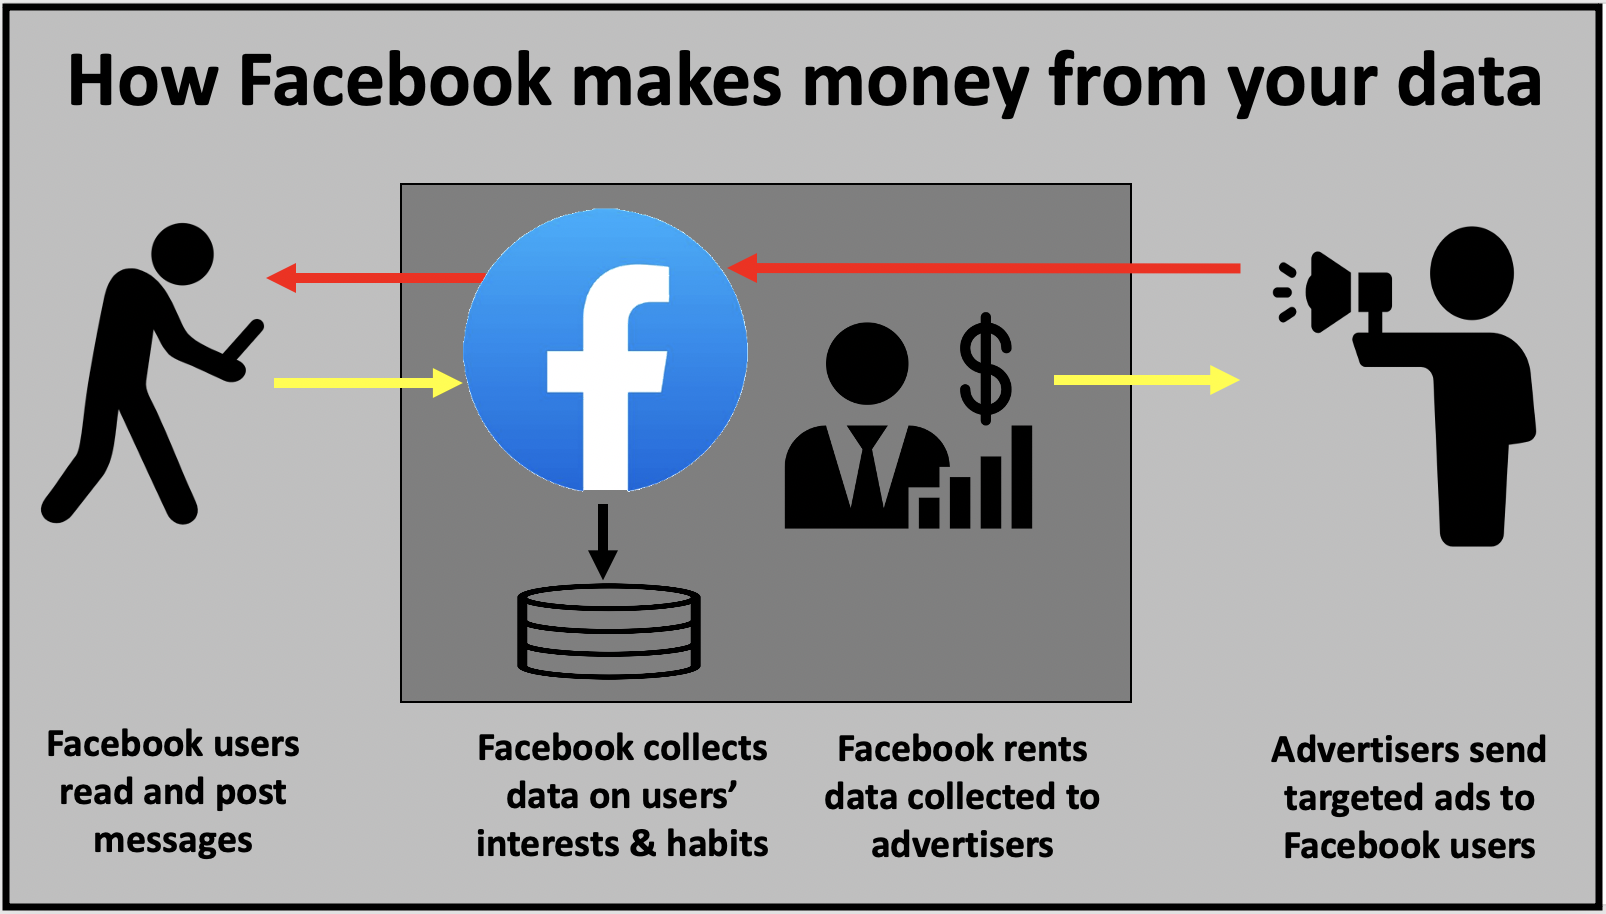 How Facebook makes money from the data it collects on its users